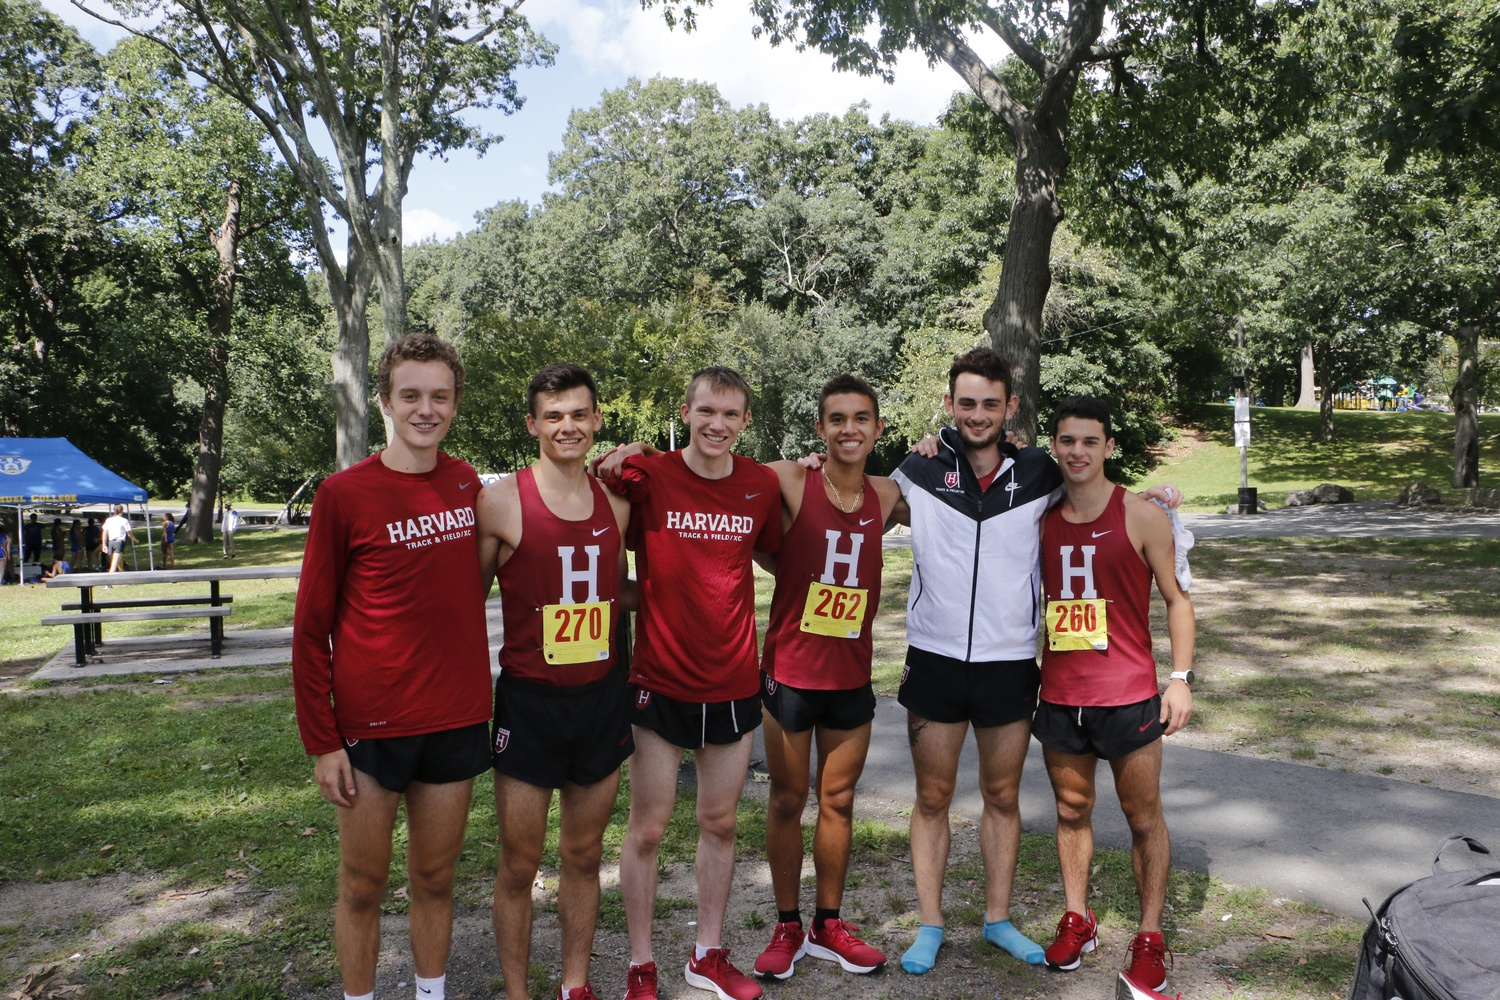 Members of the Harvard men's cross country team pose together at a competition for the first time in nearly two years.